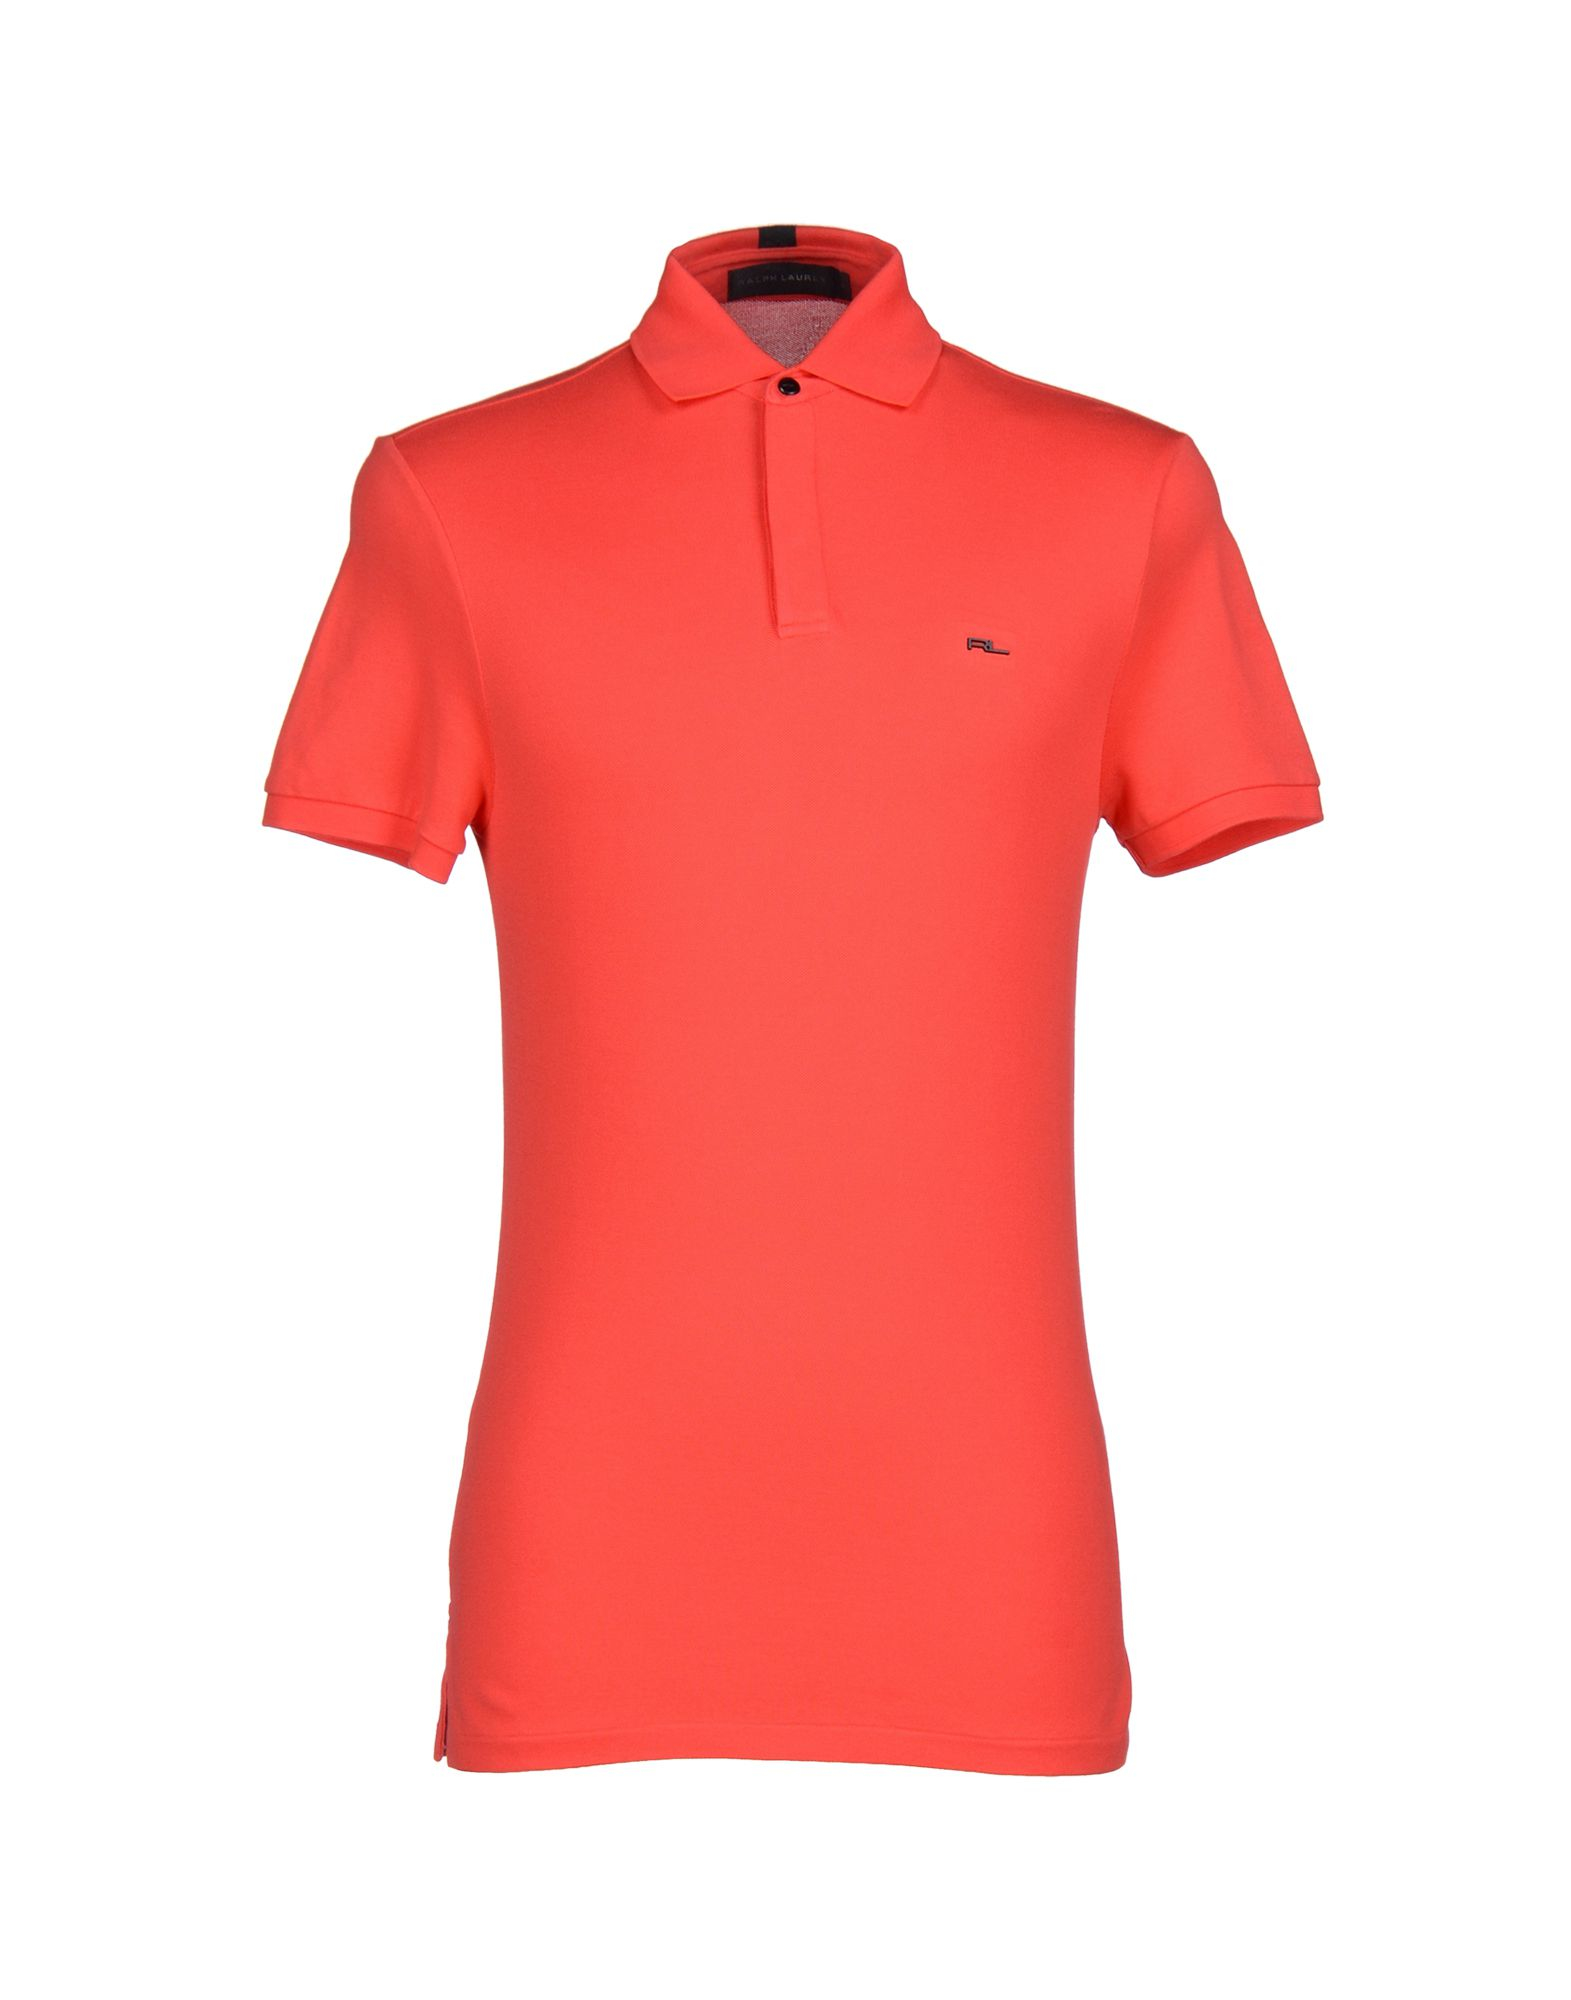 Ralph lauren black label polo shirt in red for men lyst for Ralph lauren black label polo shirt